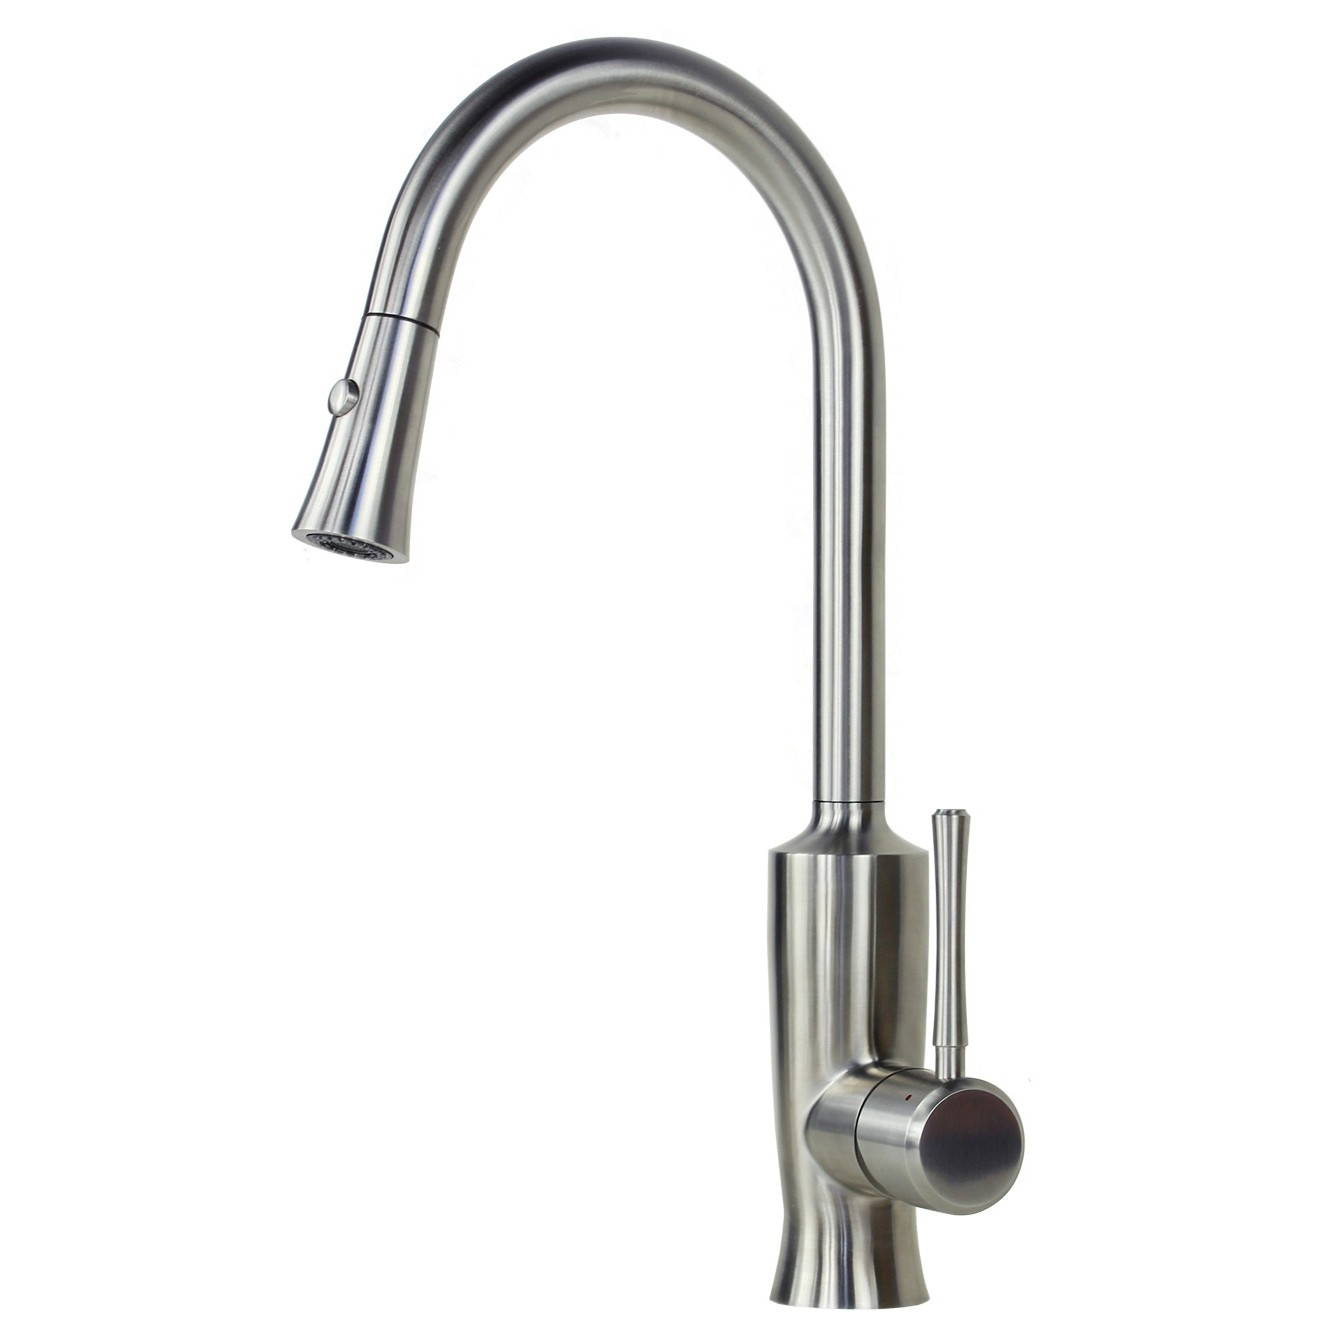 Ideas, ariel coil spring faucet ariel coil spring faucet venus stainless steel lead free pull out sprayer kitchen faucet 1337 x 1337  .